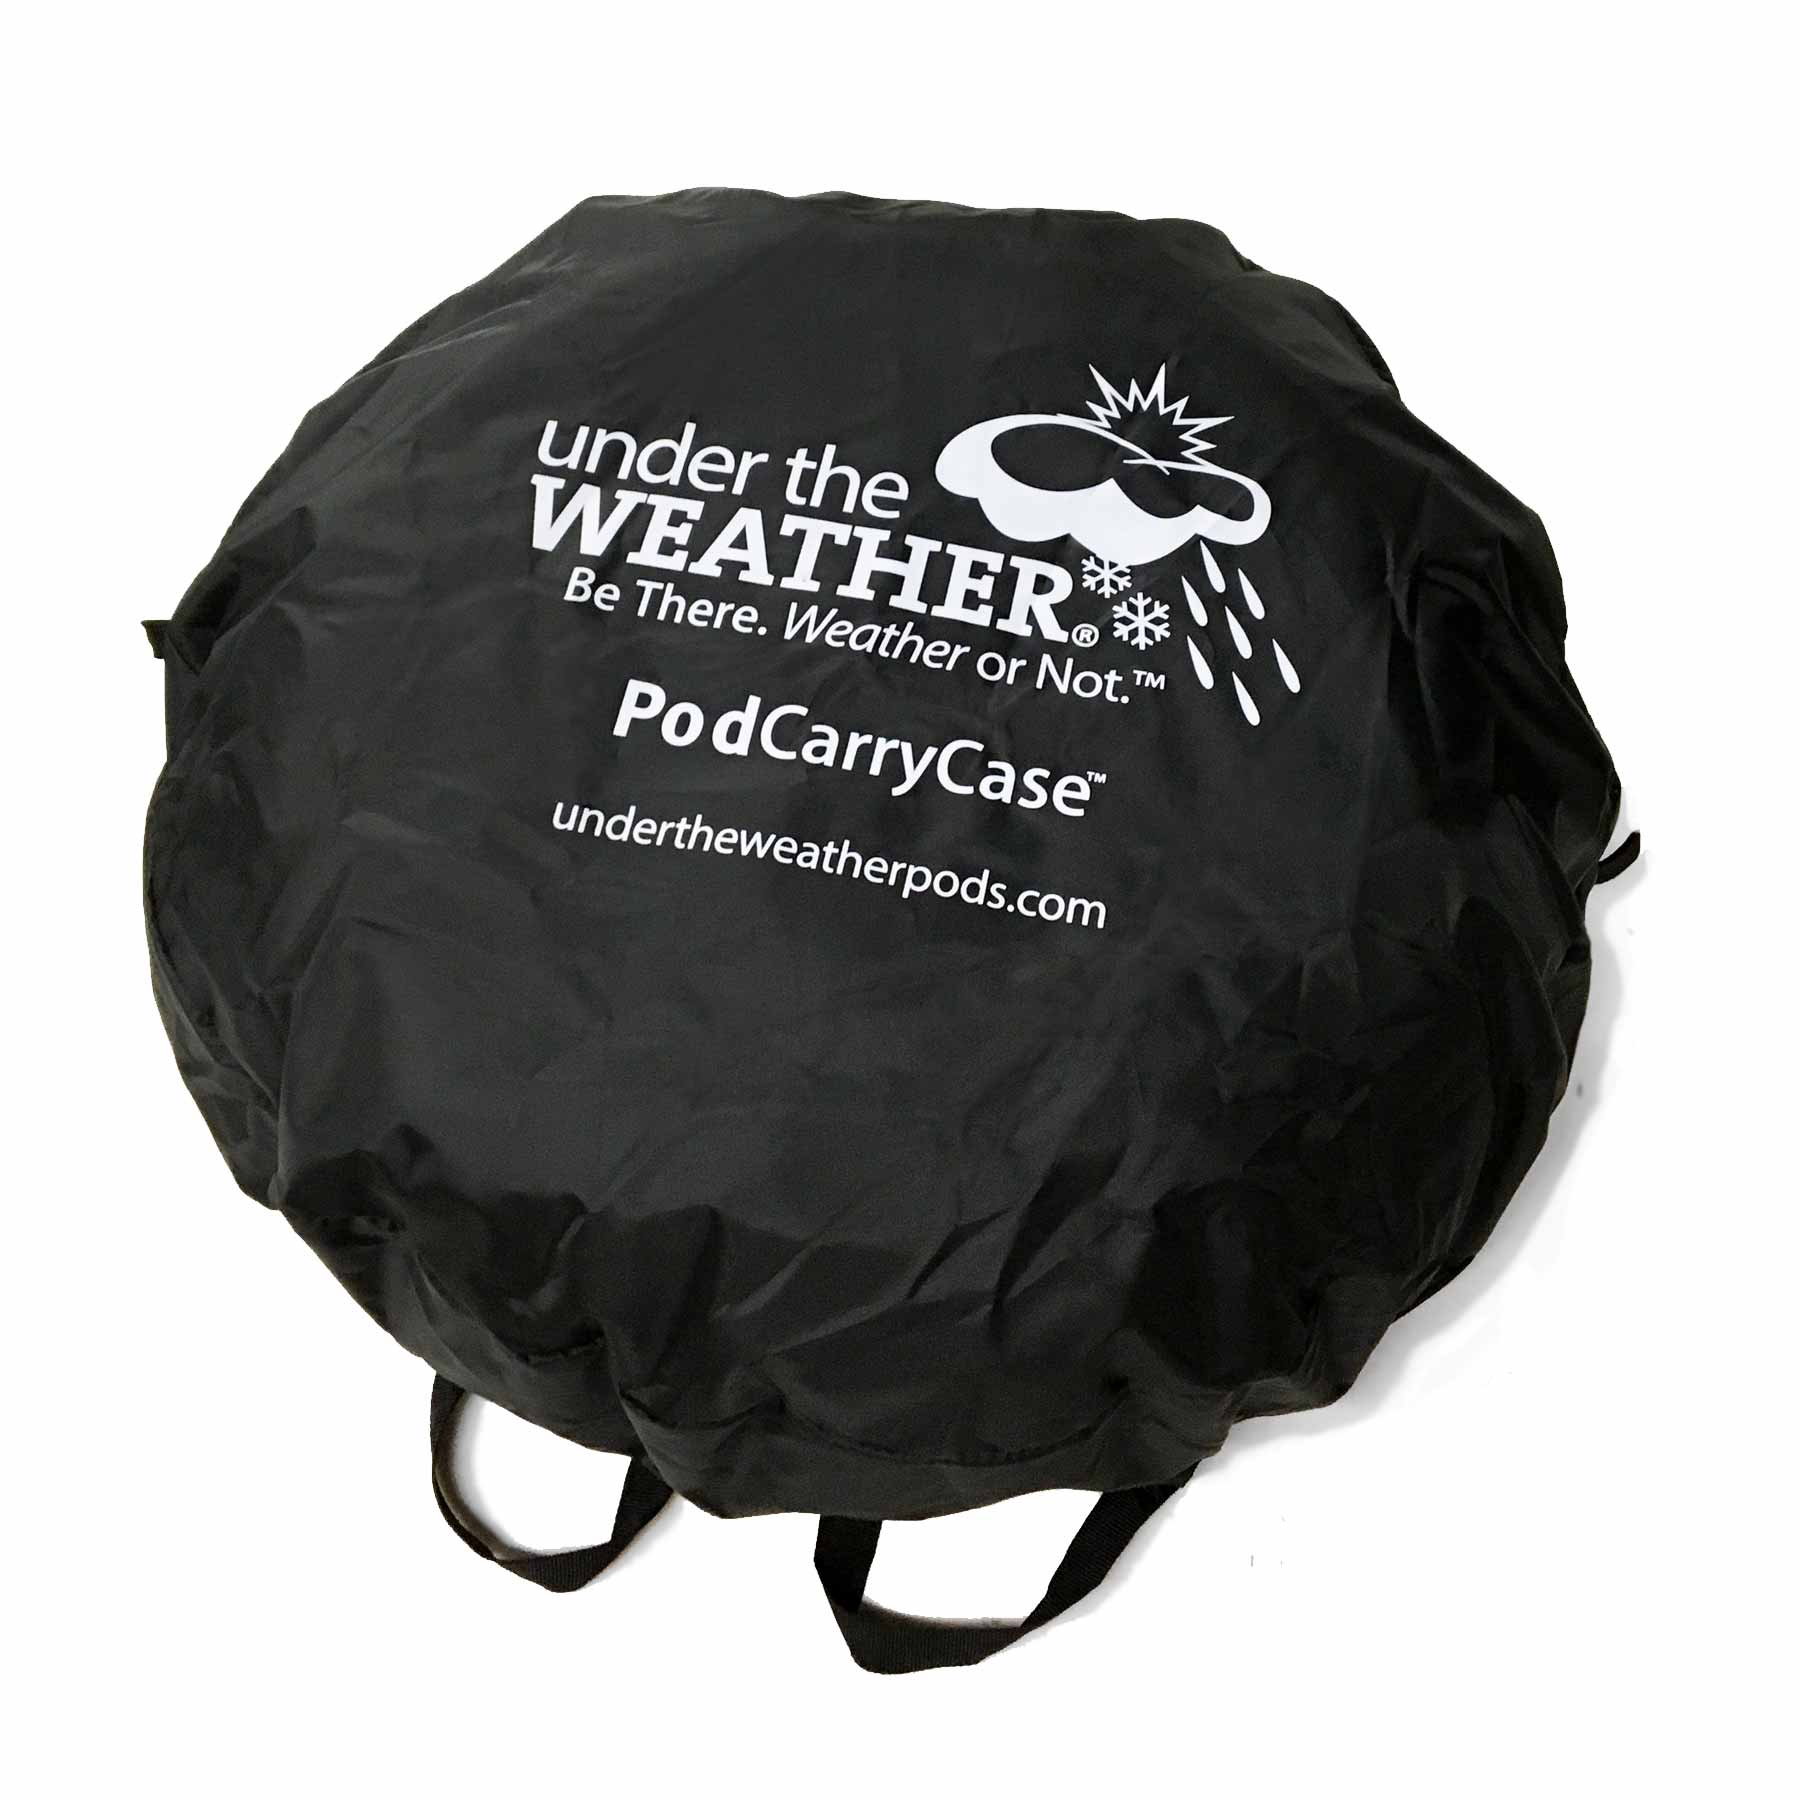 PodCarryCase - Under the Weather® - Personal pop-up sports tent for mom, dad, kids, parents - Perfect for soccer, baseball, softball, football, youth team sports - As Seen on Shark Tank